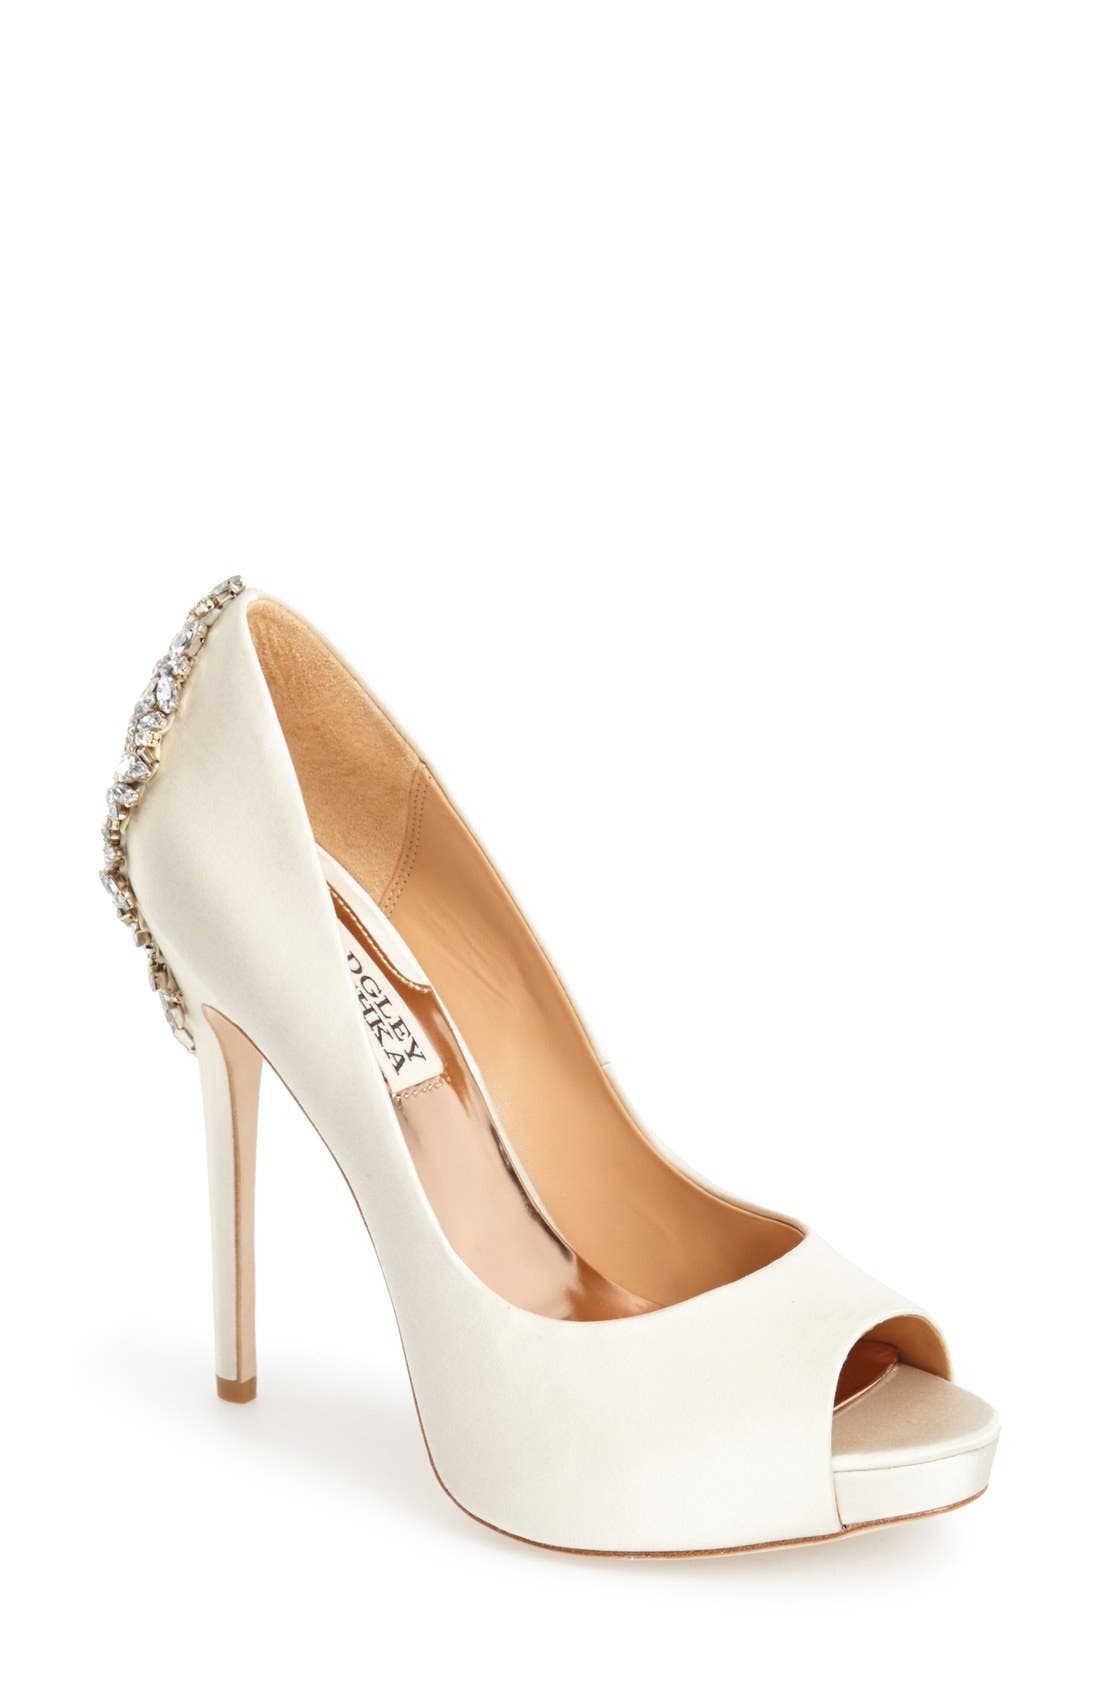 BADGLEY MISCHKA COLLECTION Badgley Mischka 'Kiara' Crystal Back Open Toe Pump, Main, color, IVORY SATN